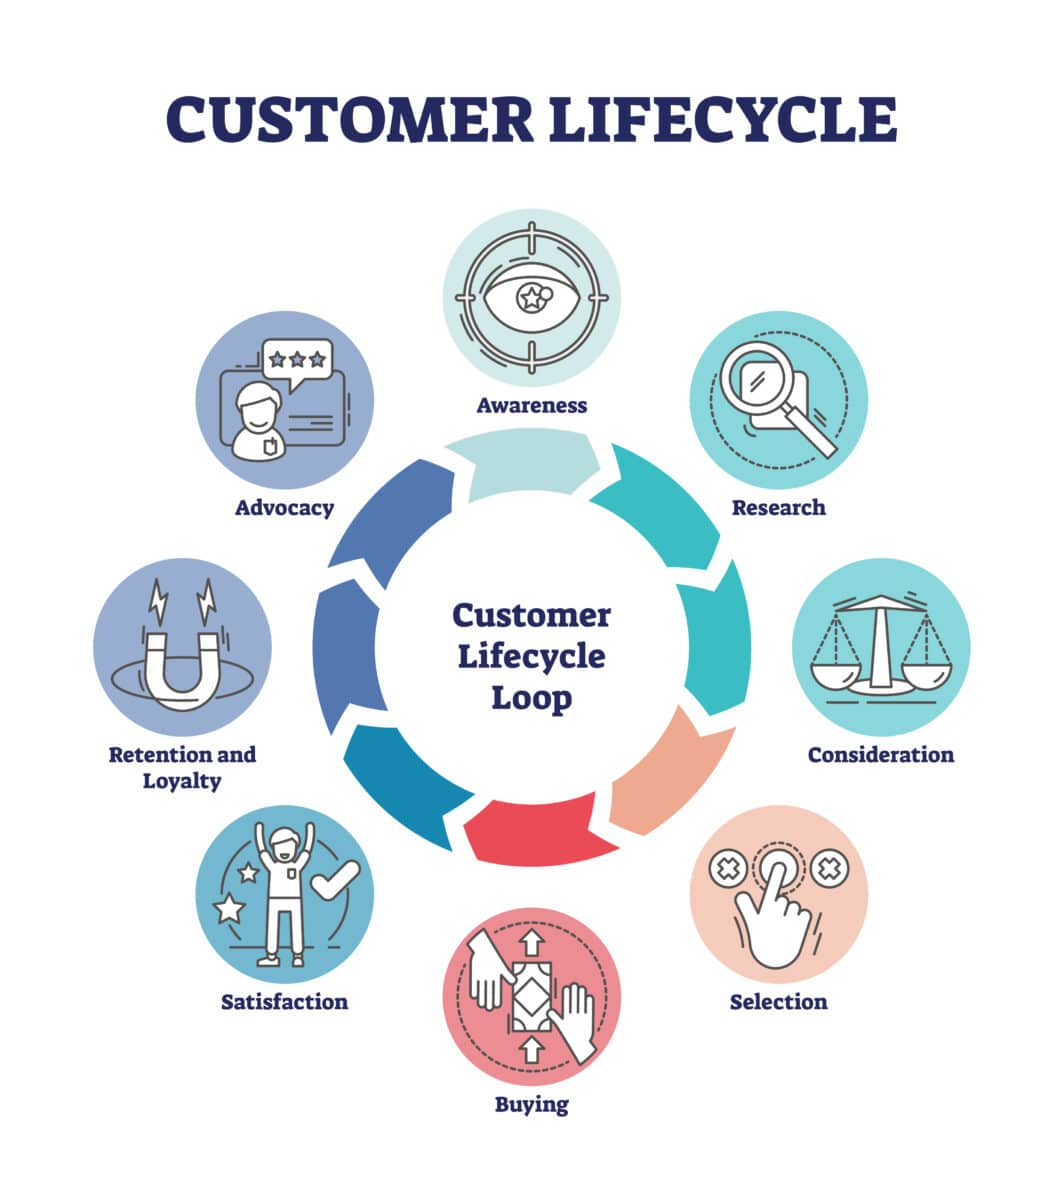 Graphic in the shape of a circle called the Customer Lifecycle Loop. There are the stages of the lifecycle listed on the graphic: Awareness, Research, Consideration, Selection, Buying, Satisfaction, Retention and Loyalty, Advocacy